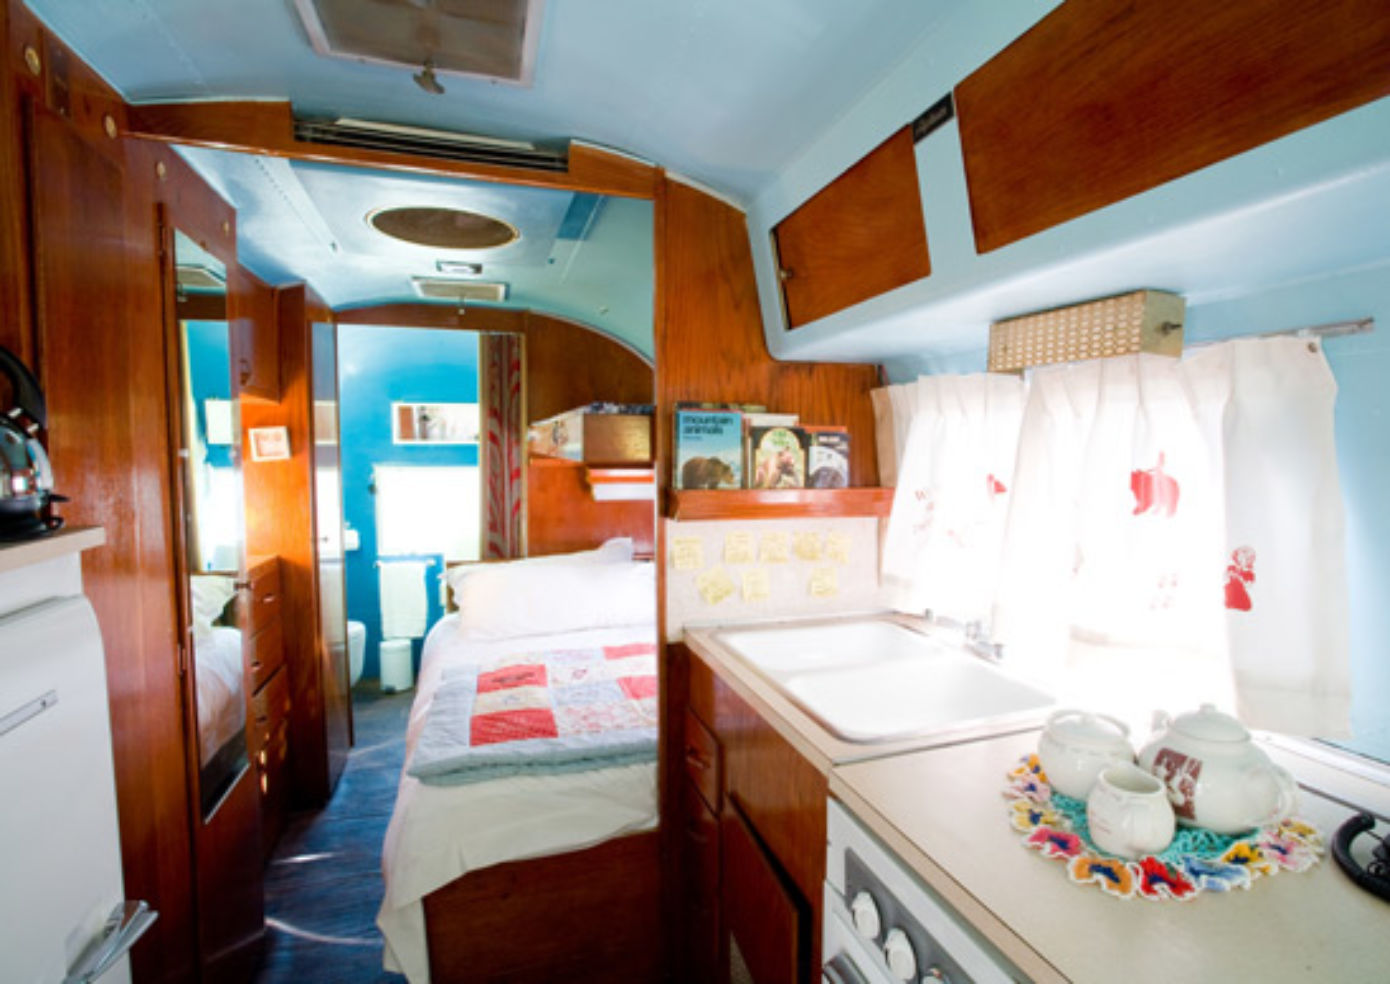 The Goldie Locks trailer at Airstream Penthouse Trailer Park